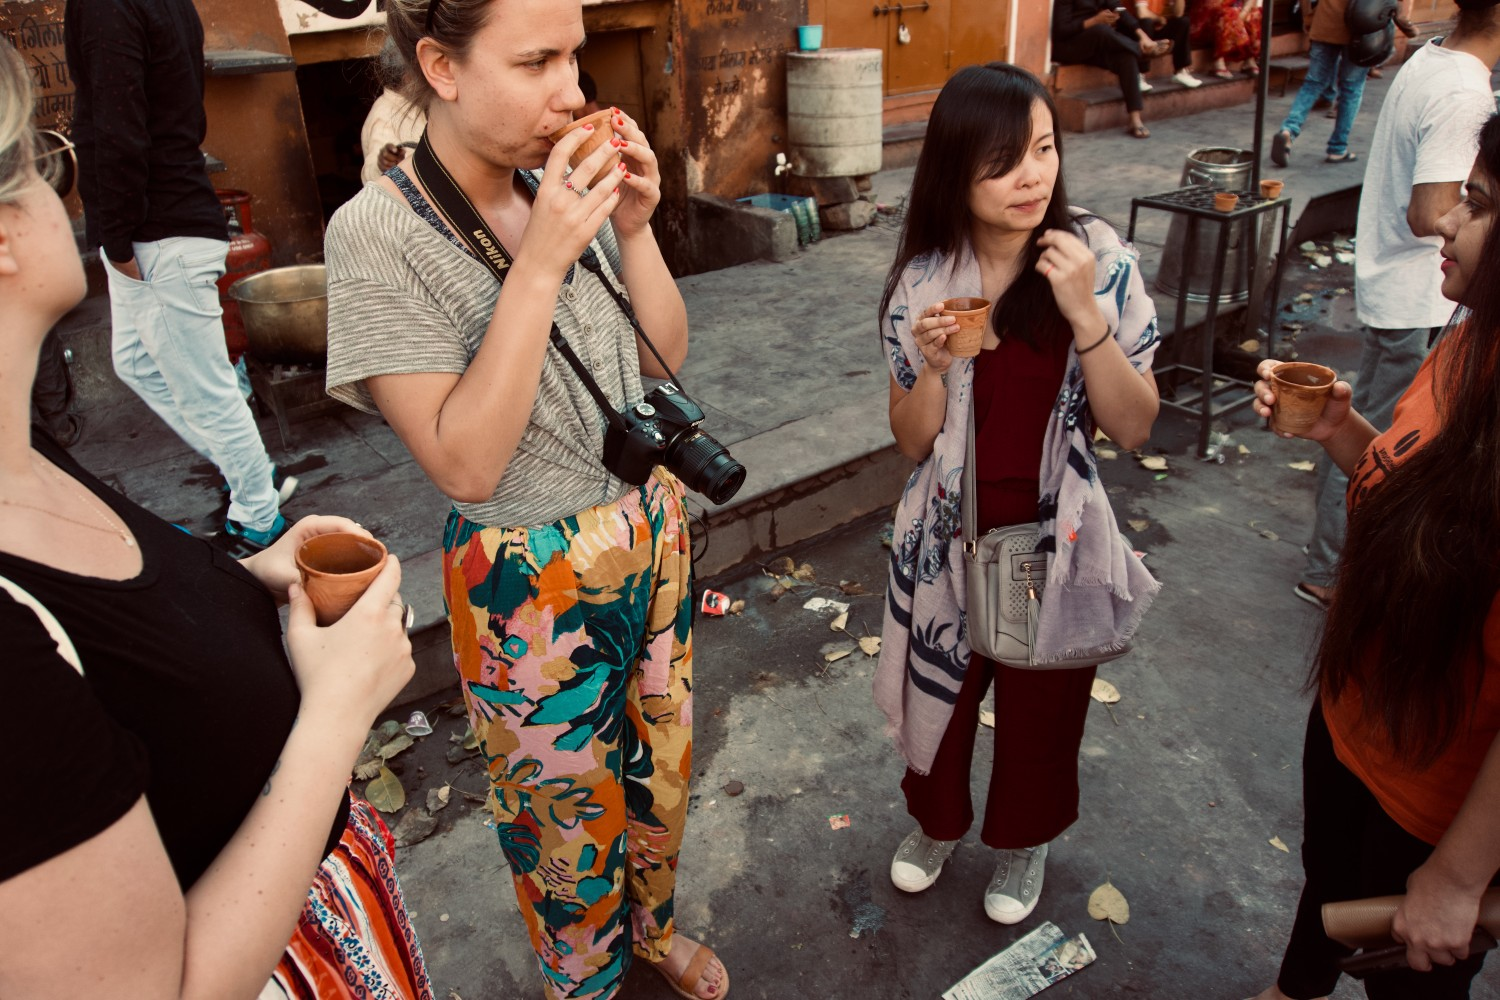 Origin Travels women's tour in India, women standing in a group tasting local drinks